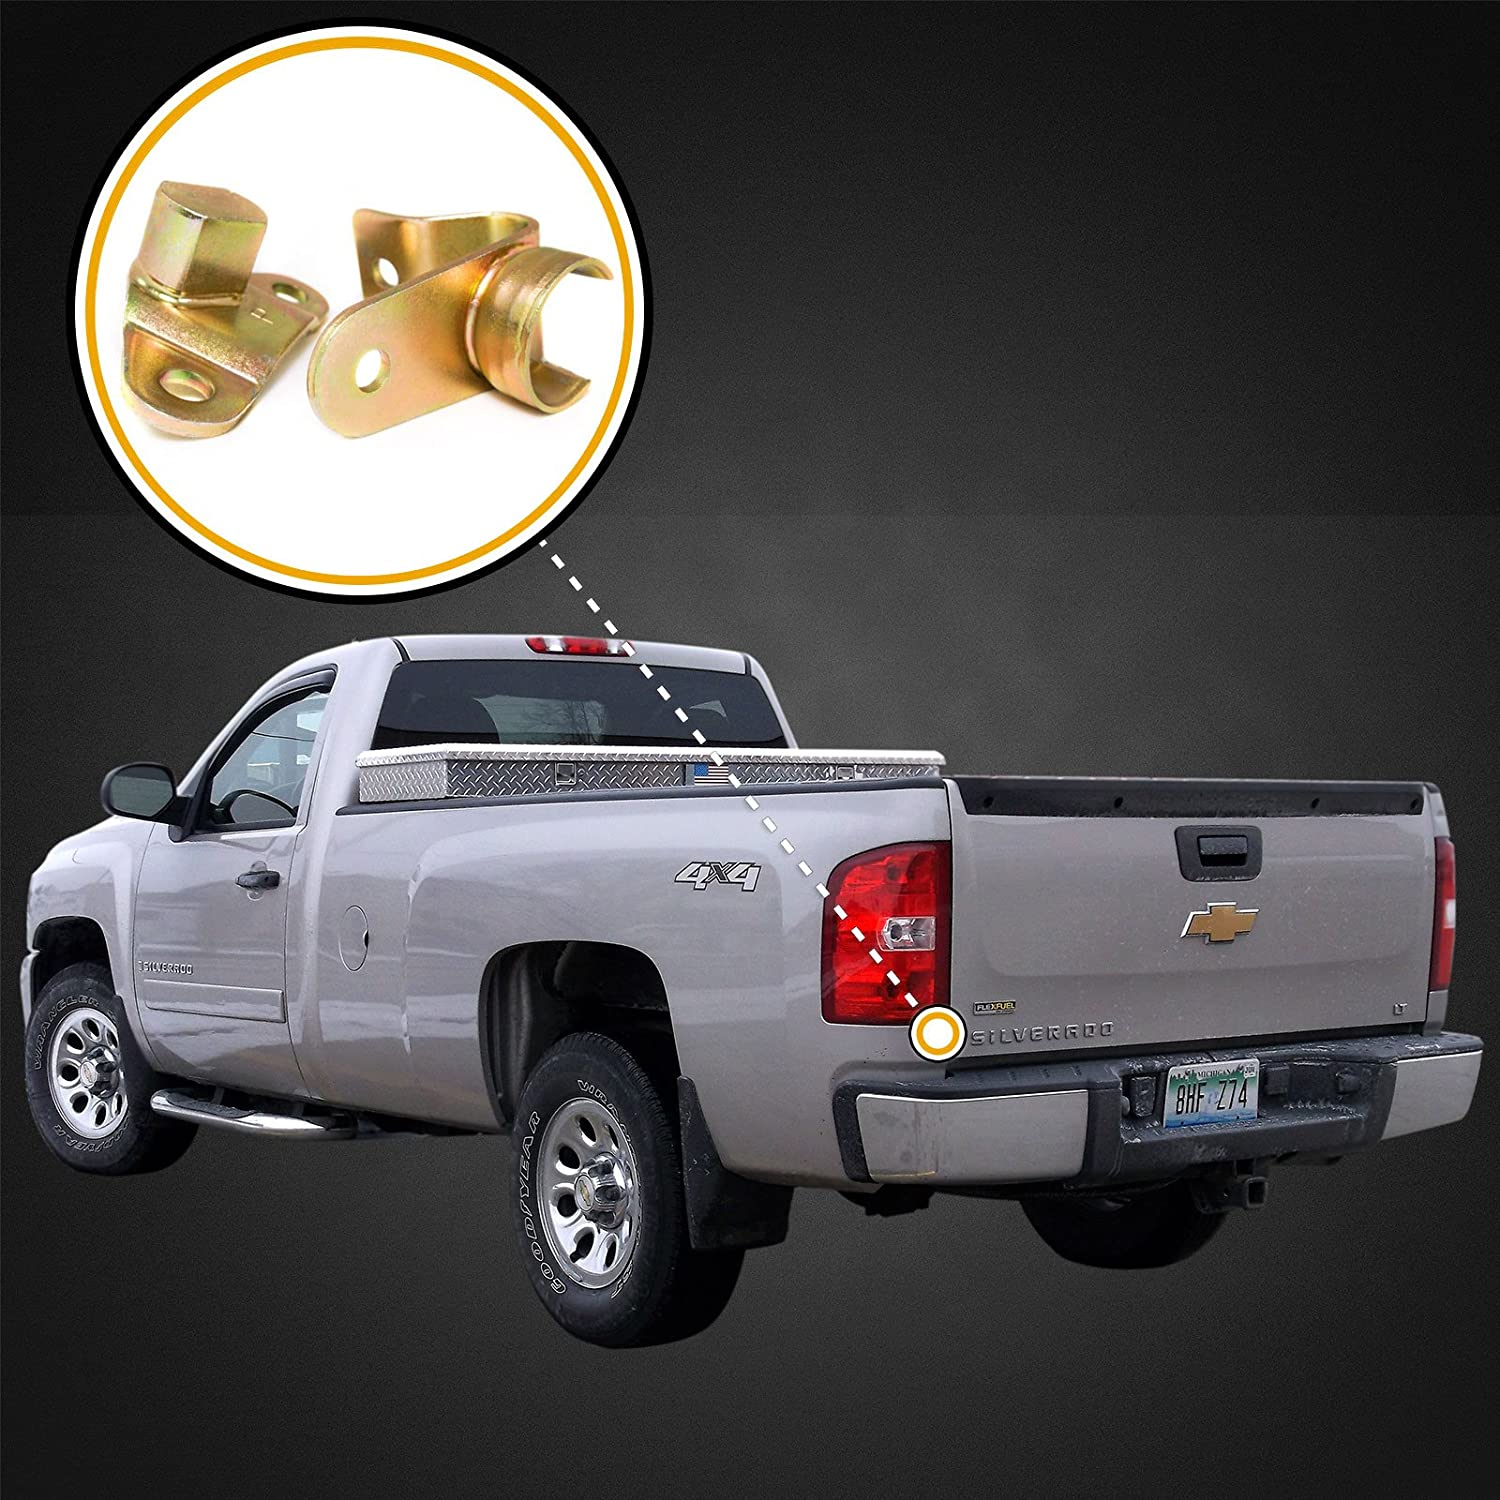 Red Hound Auto Left /& Right Side Tailgate Hinge Kit Compatible with Chevy//GMC Silverado Sierra 1999-2007 Select Models